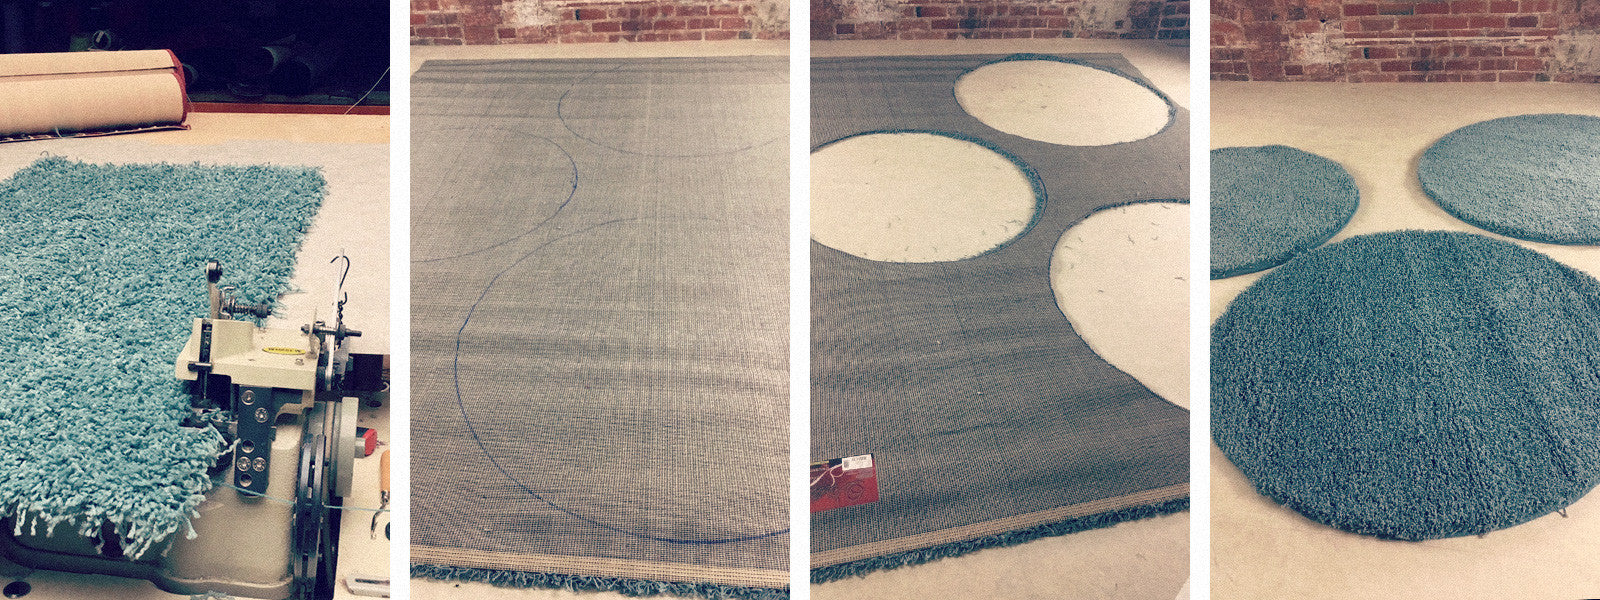 Bespoke rugs from Rugshop